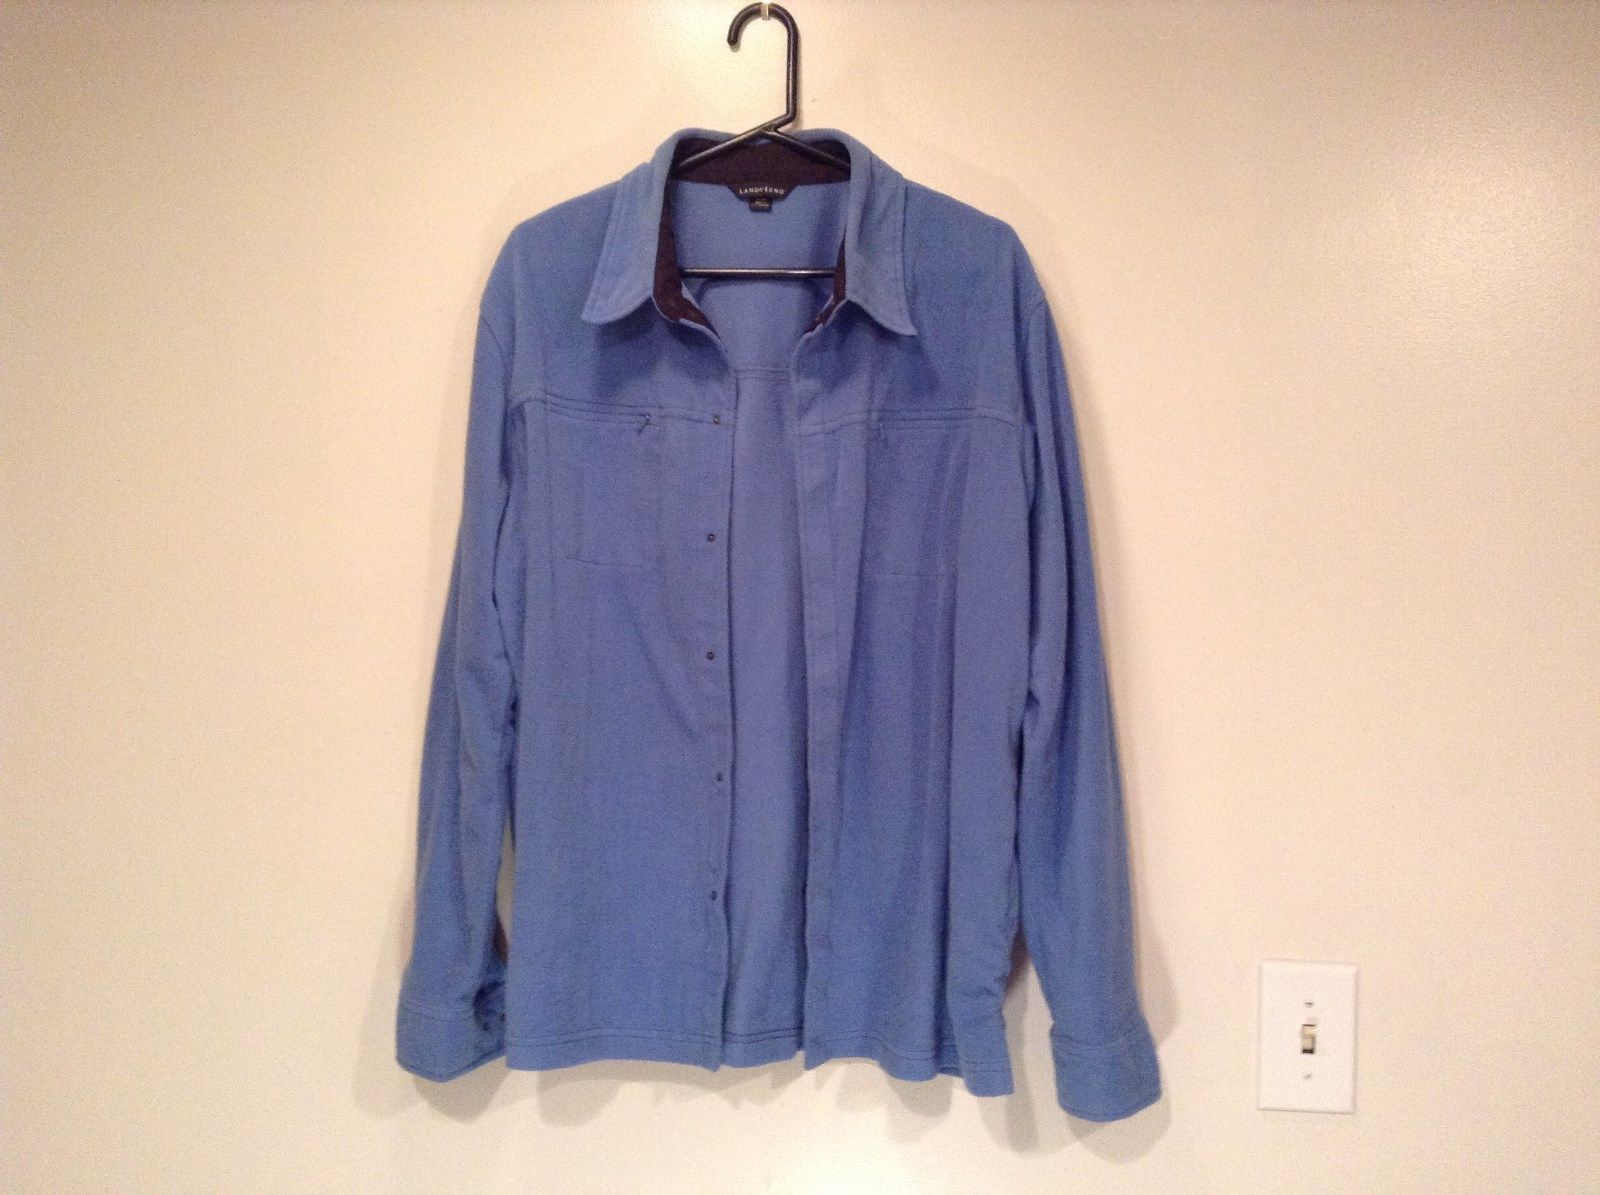 Blue with Black Trim Lands End Long Sleeve Fleece Shirt Size XL 46 to 48